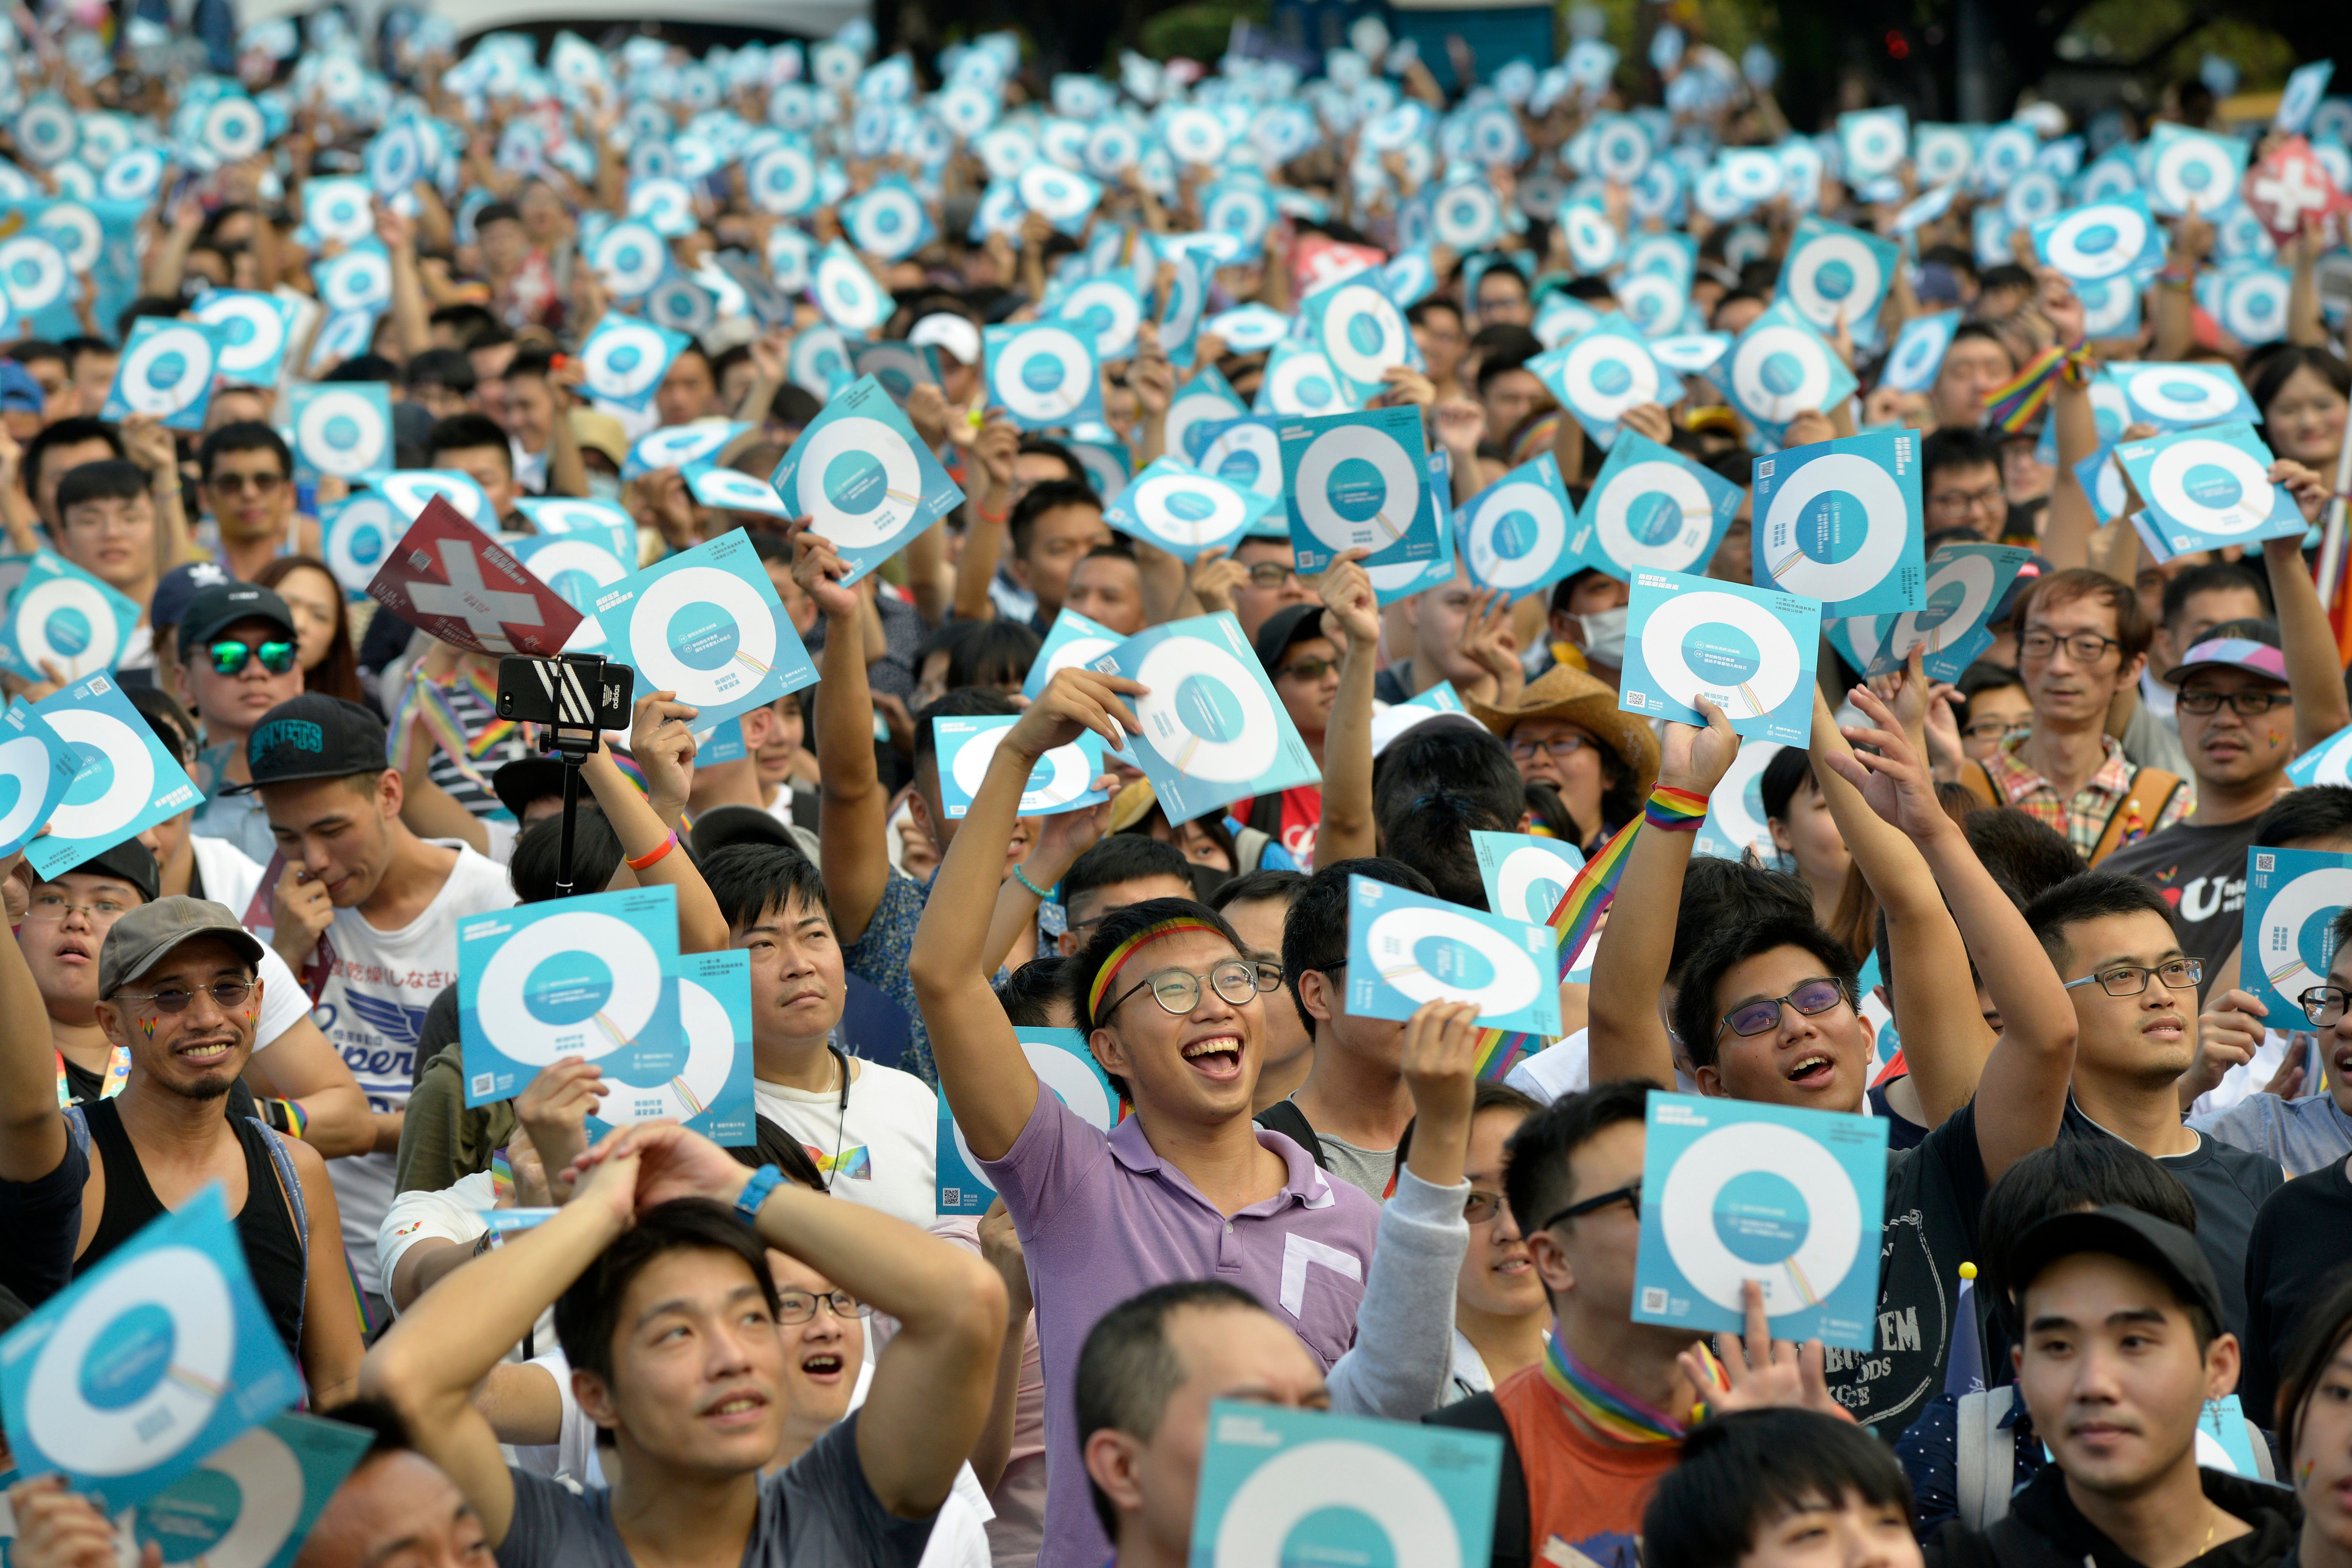 Taiwan gay marriage: 100,000 rally for LGBT rights ahead of referendum